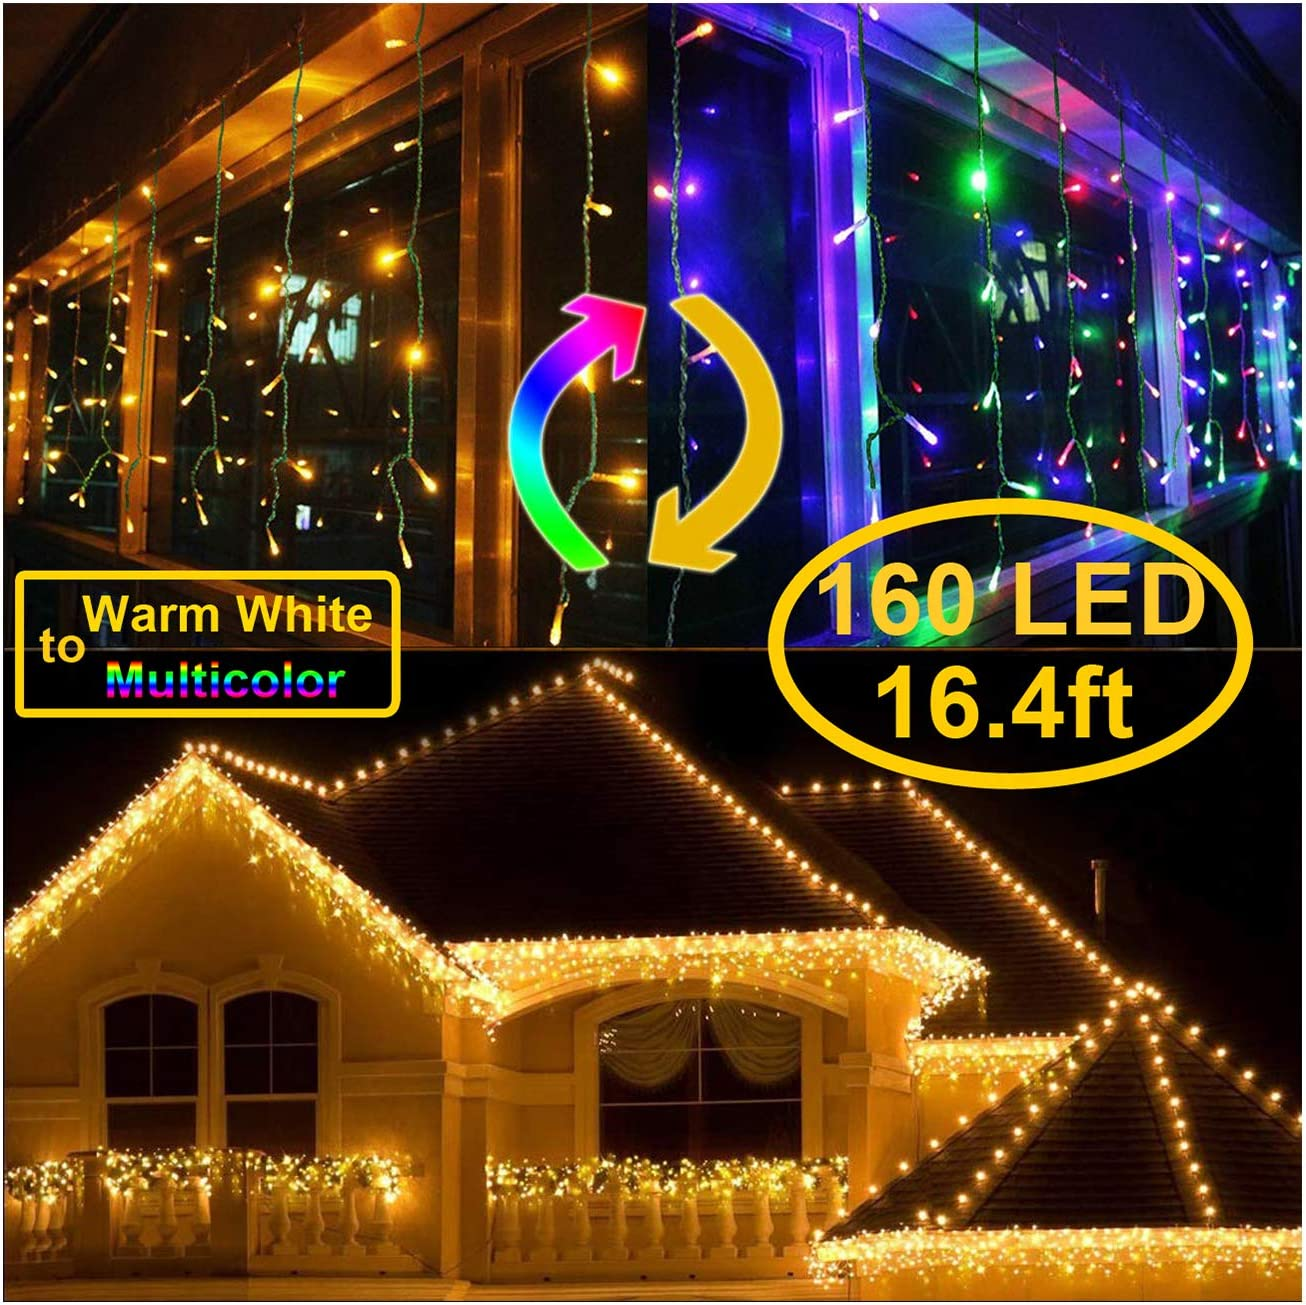 KNONEW LED Curtain Icicle Lights, 8 Modes, String Fairy Light, with Remote Control, LED String Light for Wedding Party/Christmas/Halloween/Party Backdrops Cool White